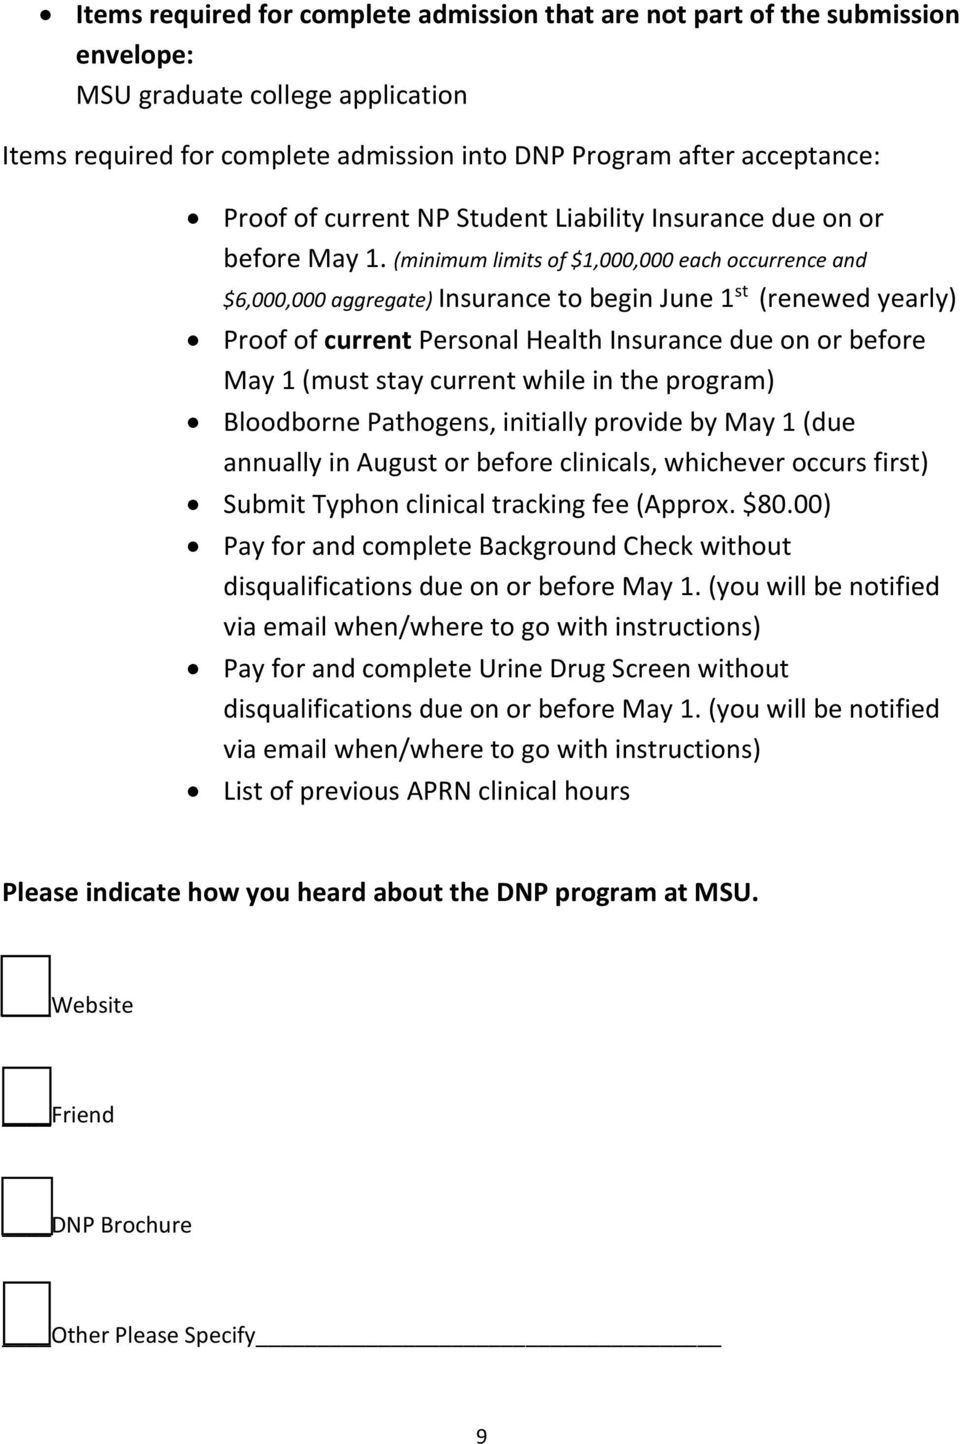 (minimum limits of $1,000,000 each occurrence and $6,000,000 aggregate) Insurance to begin June 1 st (renewed yearly) Proof of current Personal Health Insurance due on or before May 1 (must stay